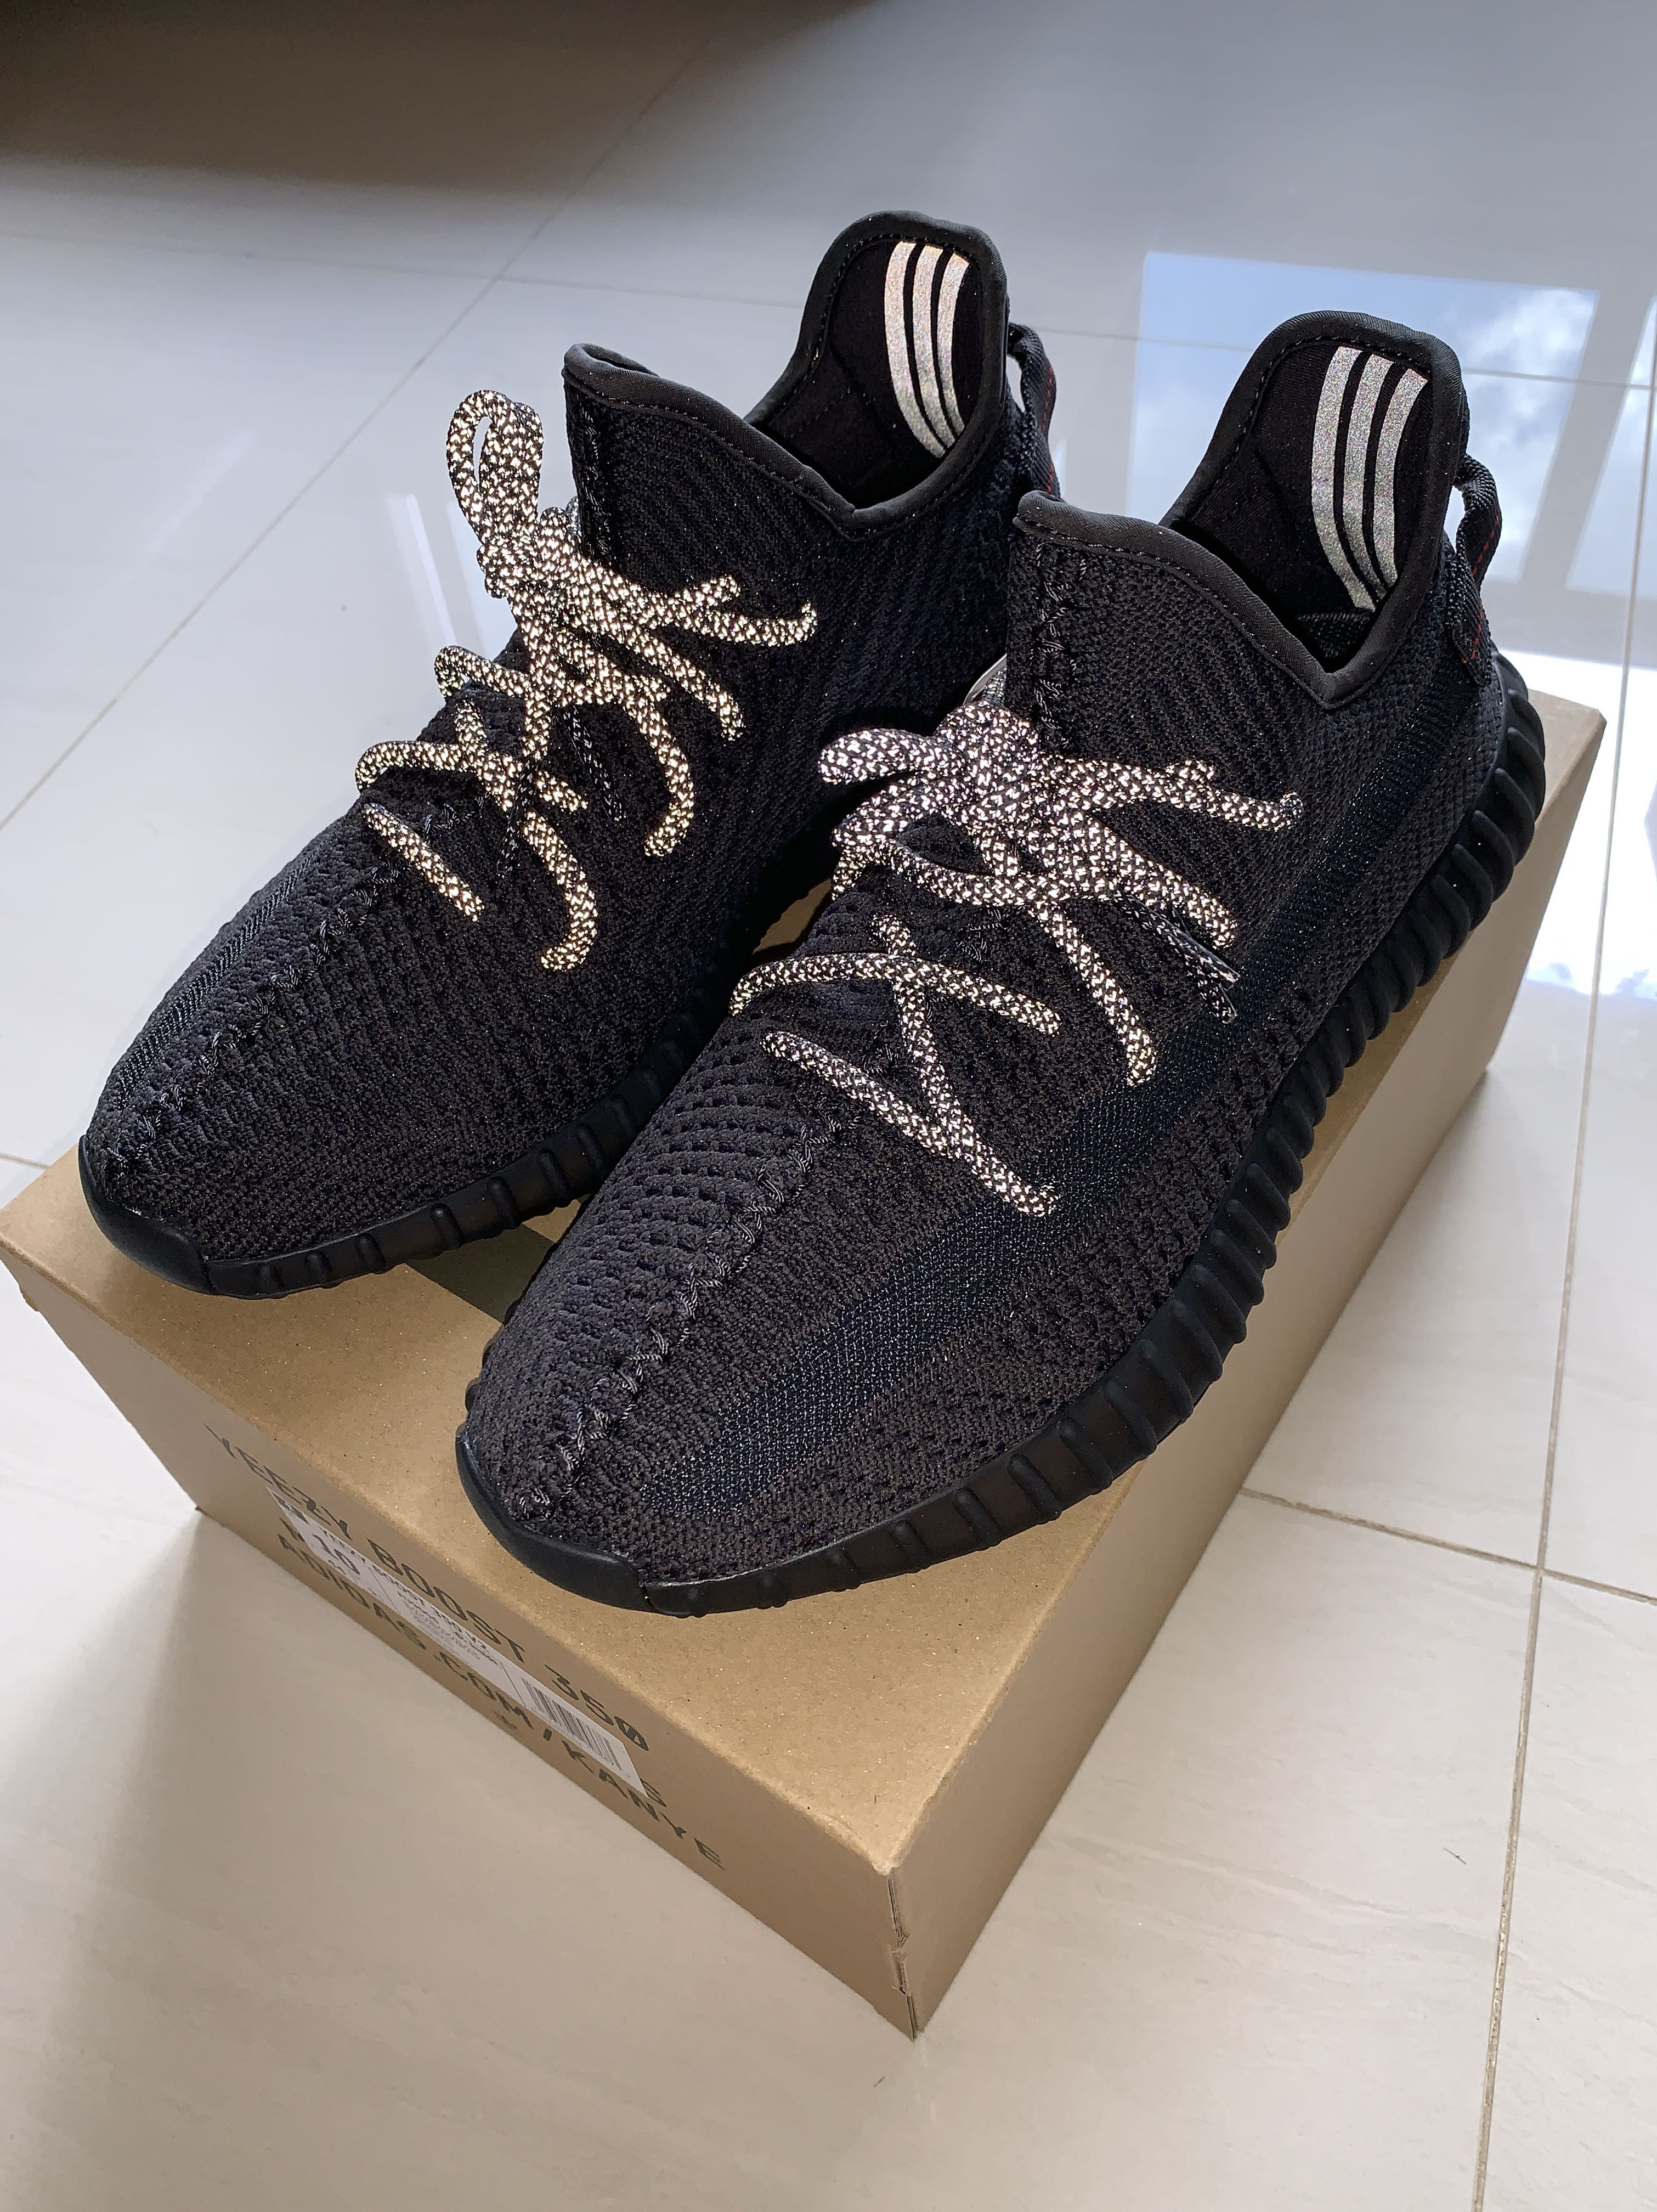 3723057c Yeezy Boost 350 V2 Black Static NF, Men's Fashion, Footwear, Sneakers on  Carousell